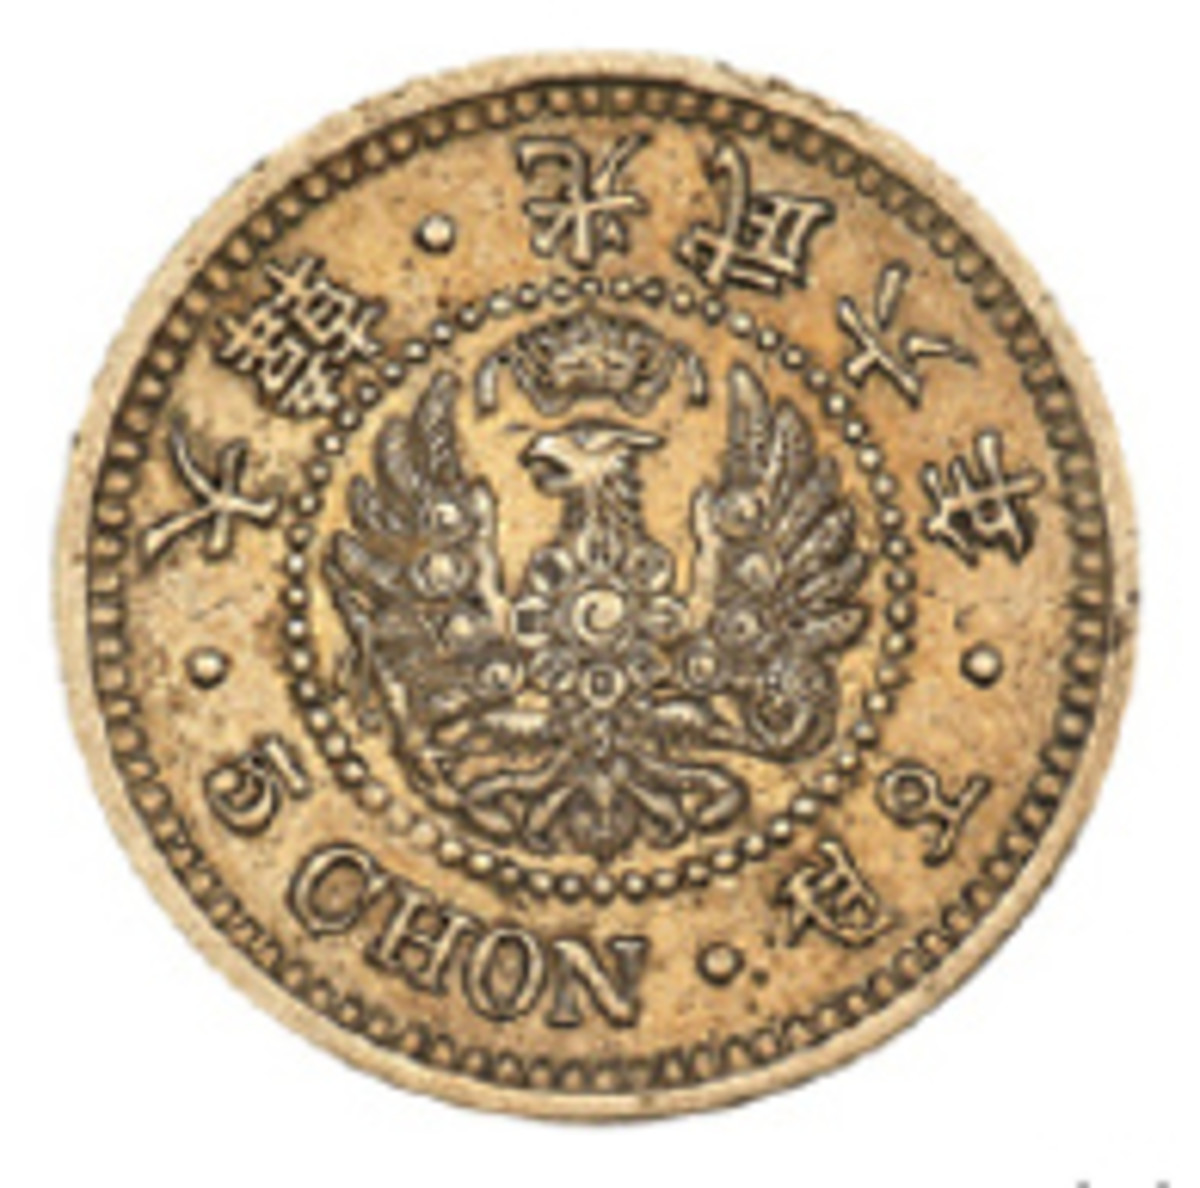 Obverse of rare Korean cupro-nickel 5 chon struck for Emperor Kuang Mu in 1902 that went for $24,000 certified AU-58 NGC. (Image courtesy and © www.ha.com)